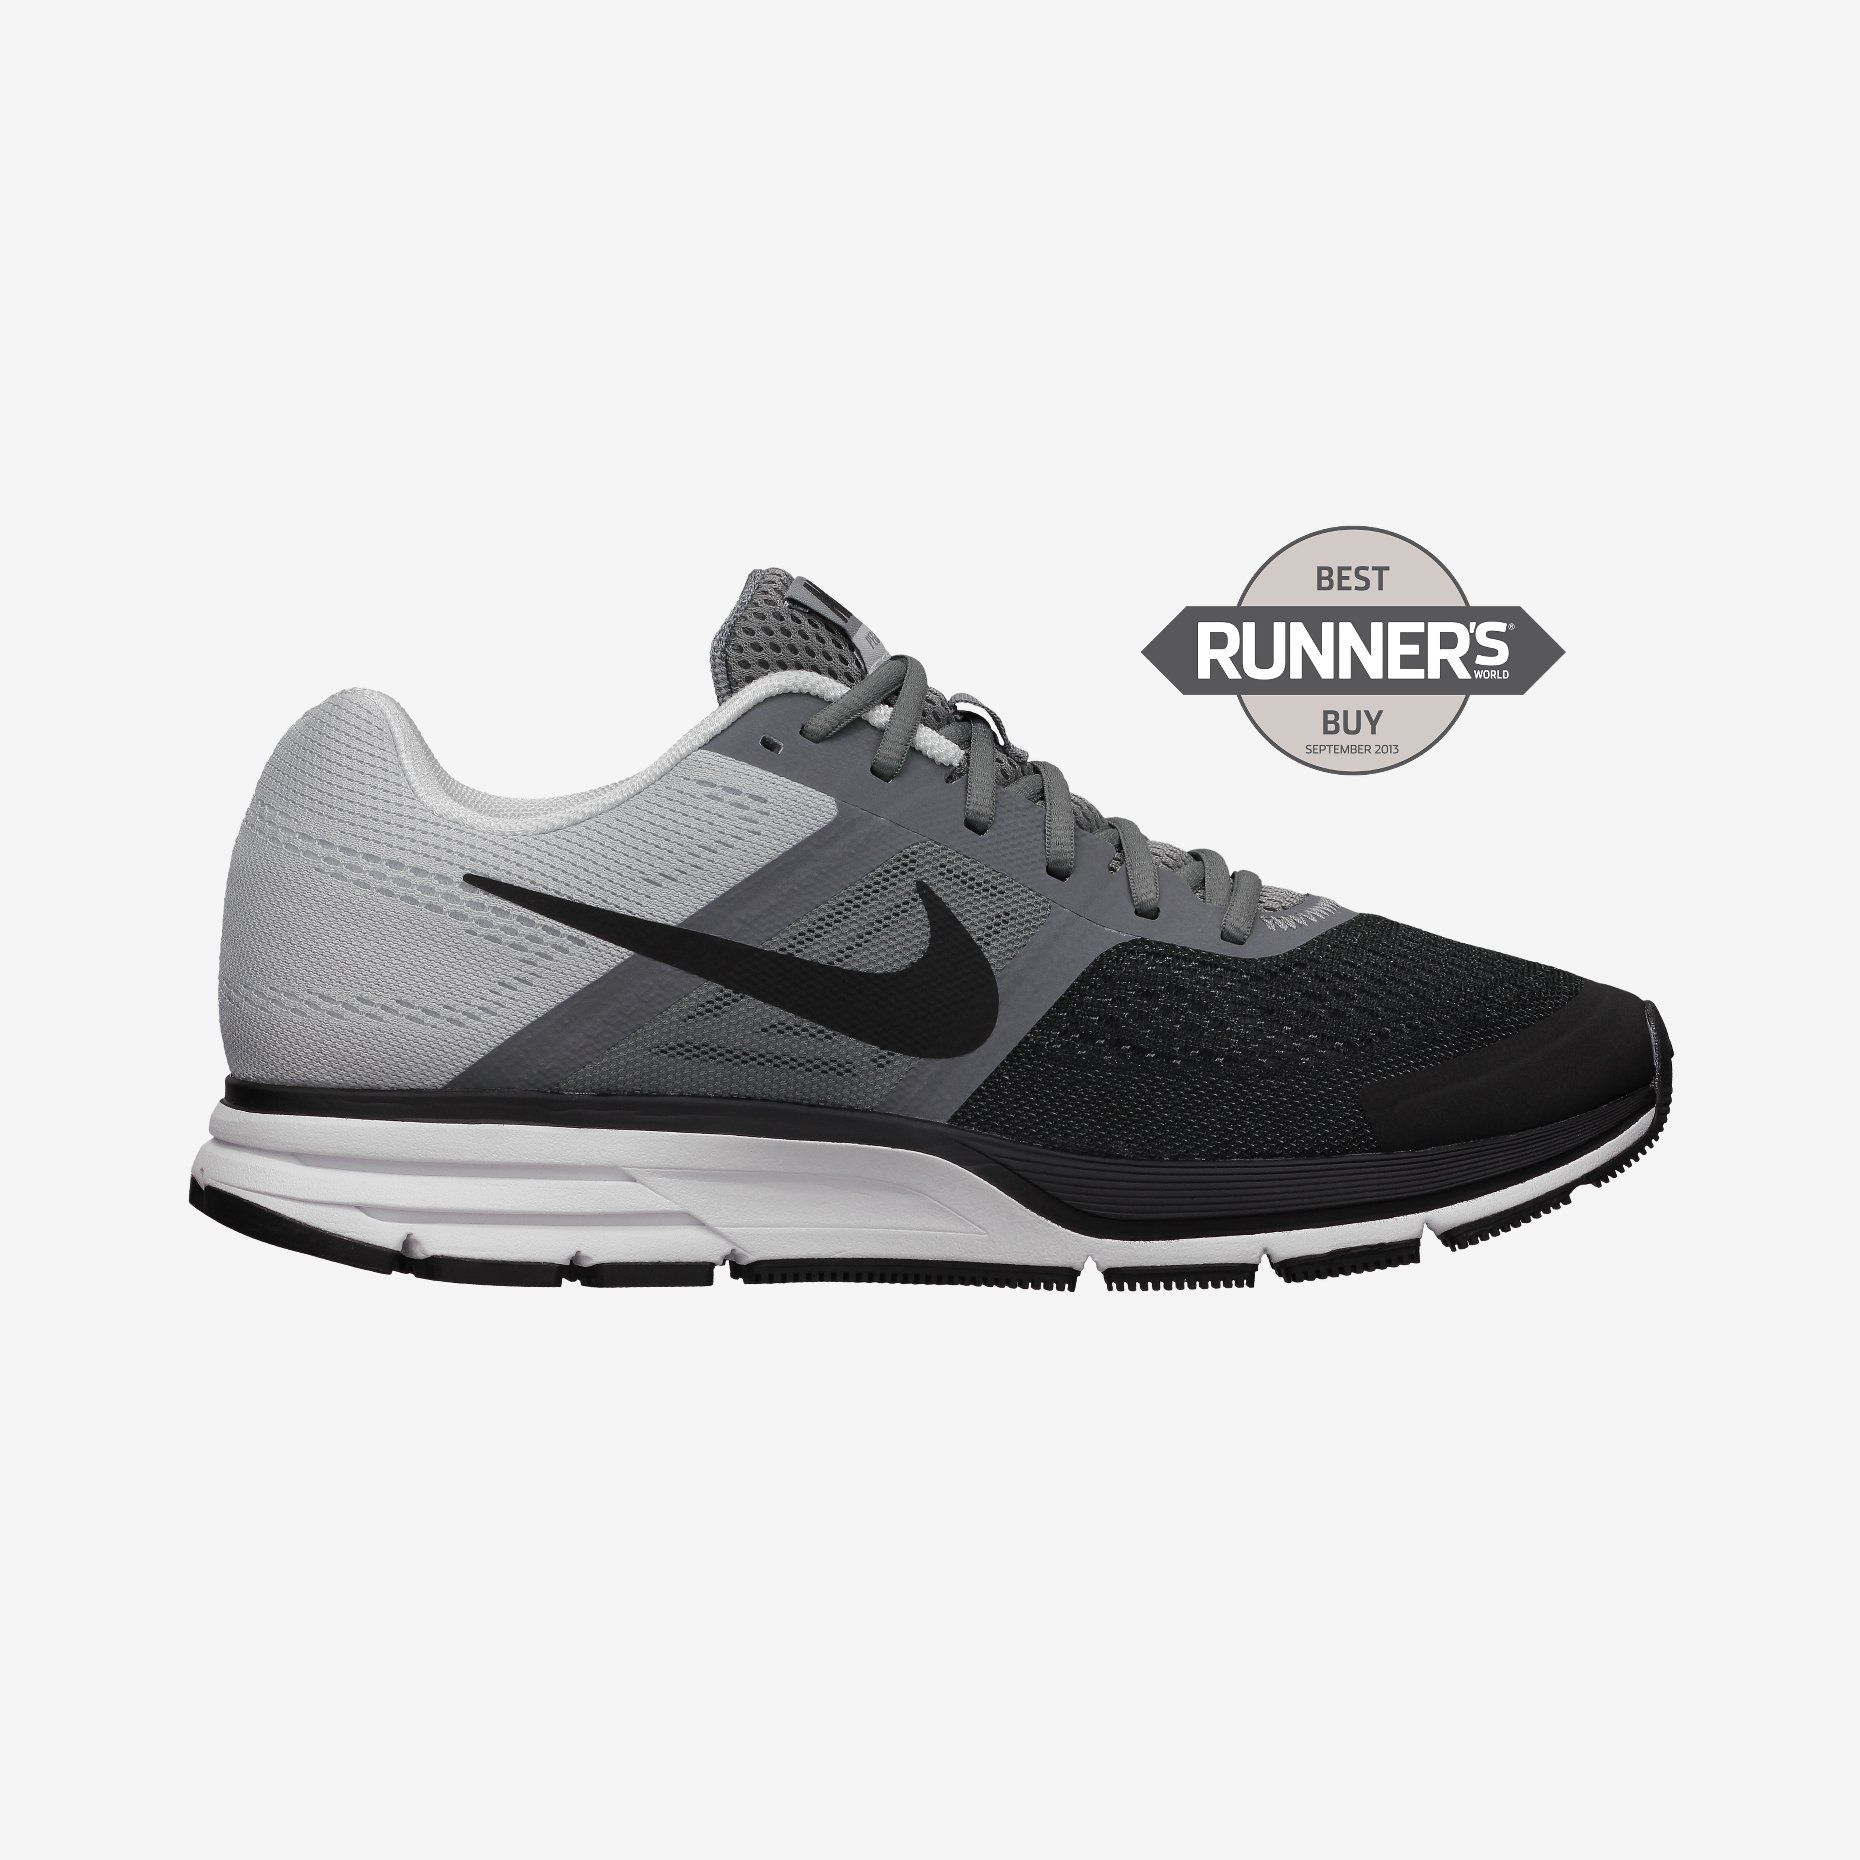 f55a54fd9185 Nike Store. Nike Air Pegasus 30 Men s Running Shoe